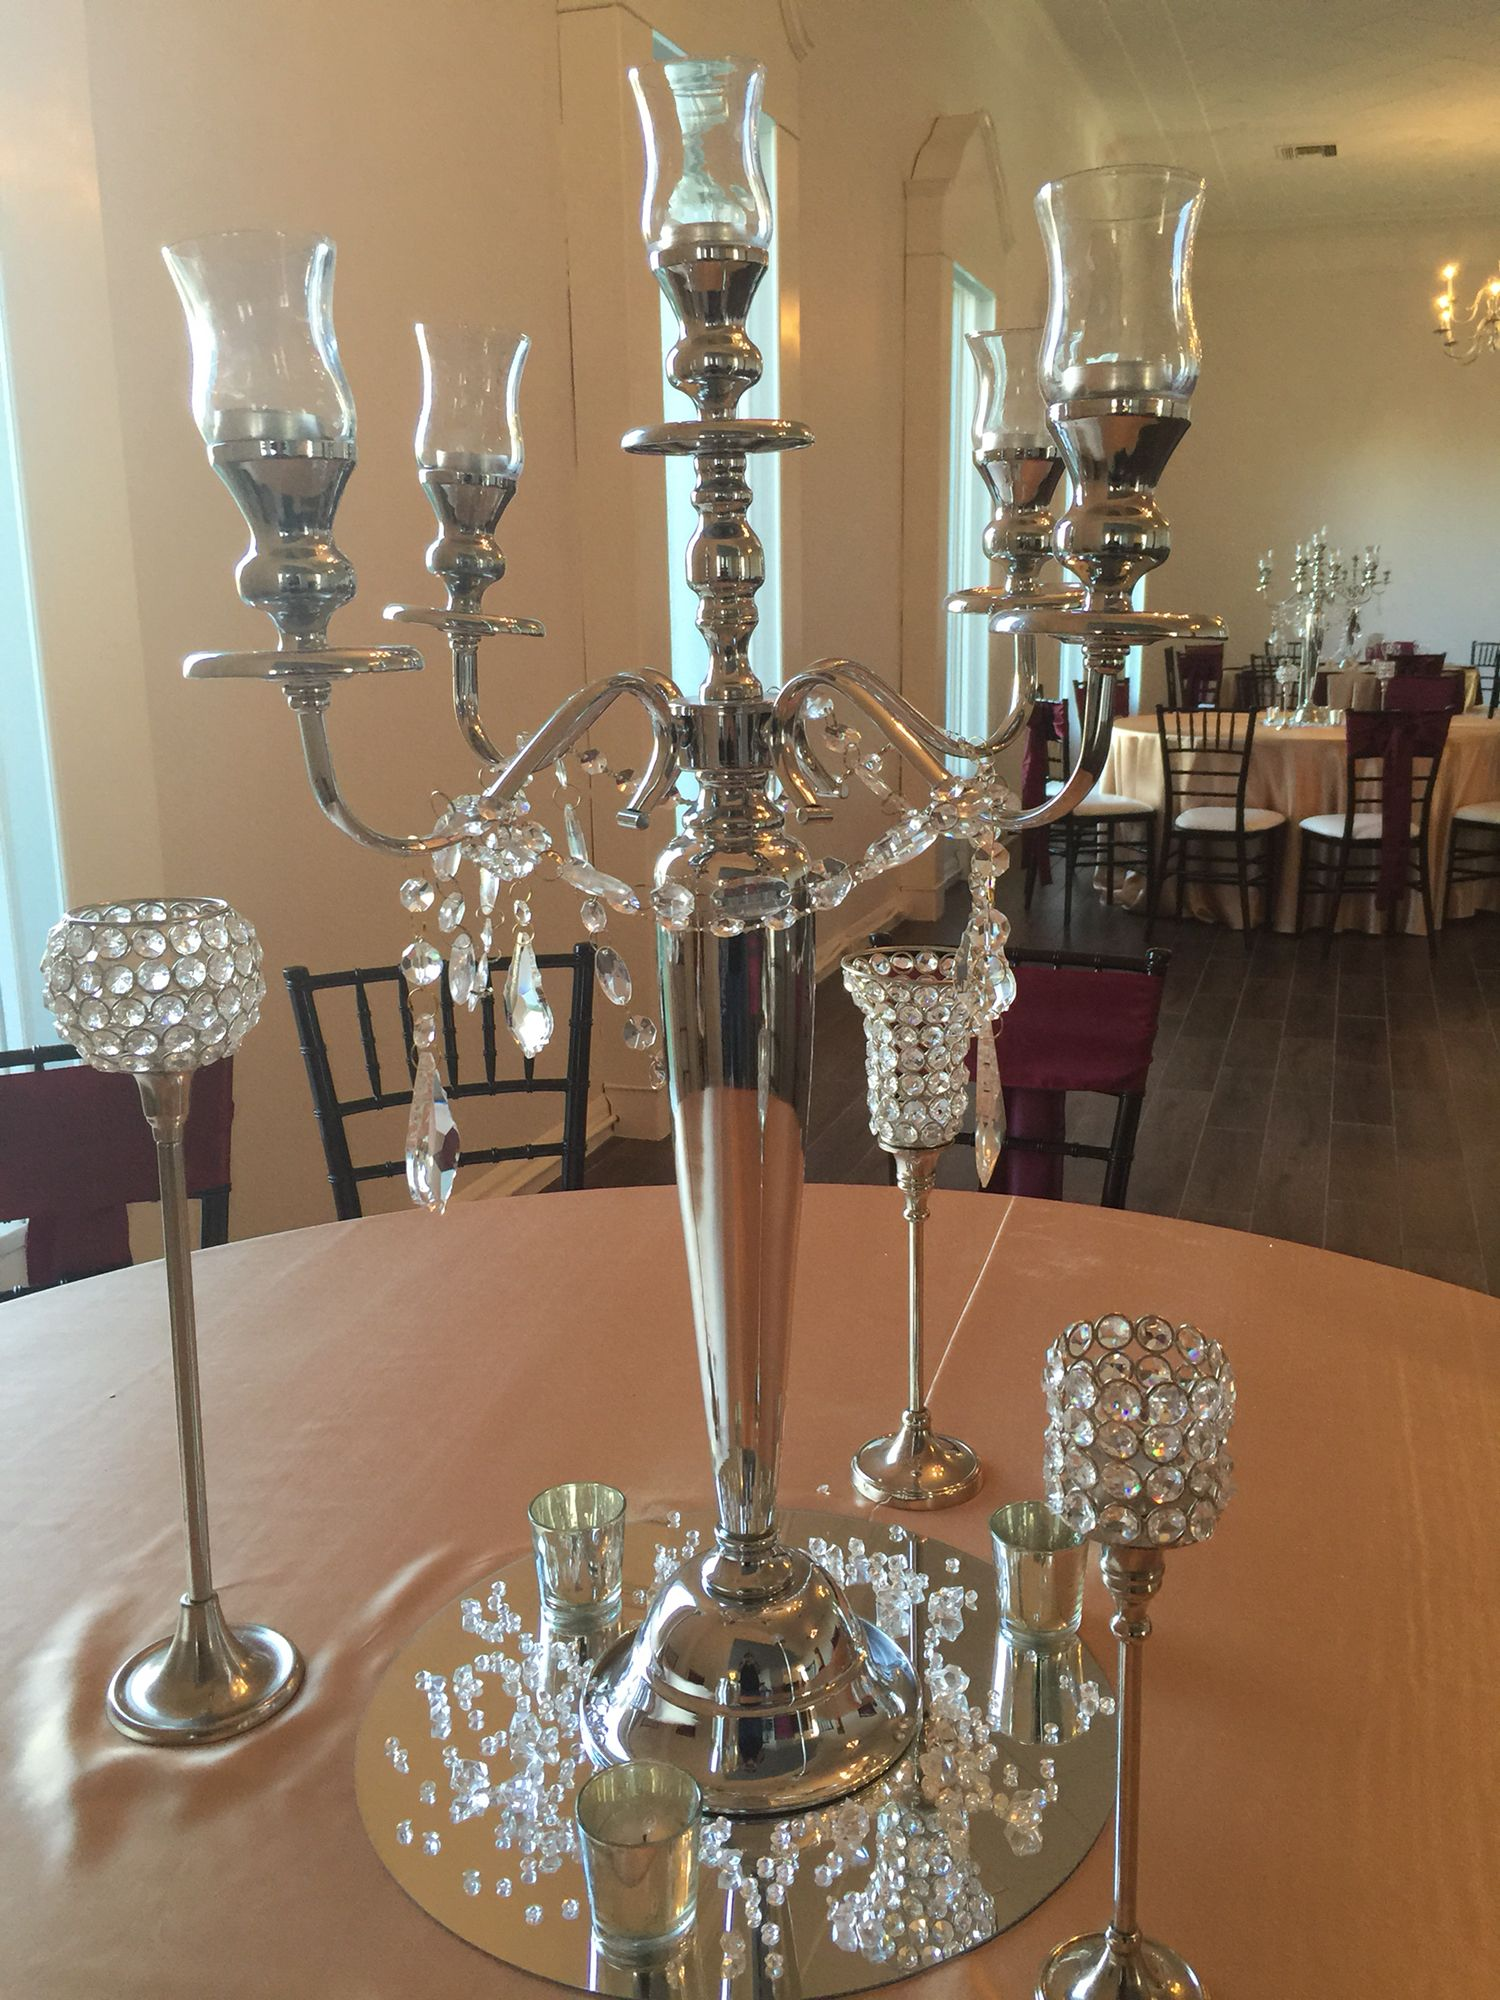 Silver candelabra draped in crystals with bling pieces